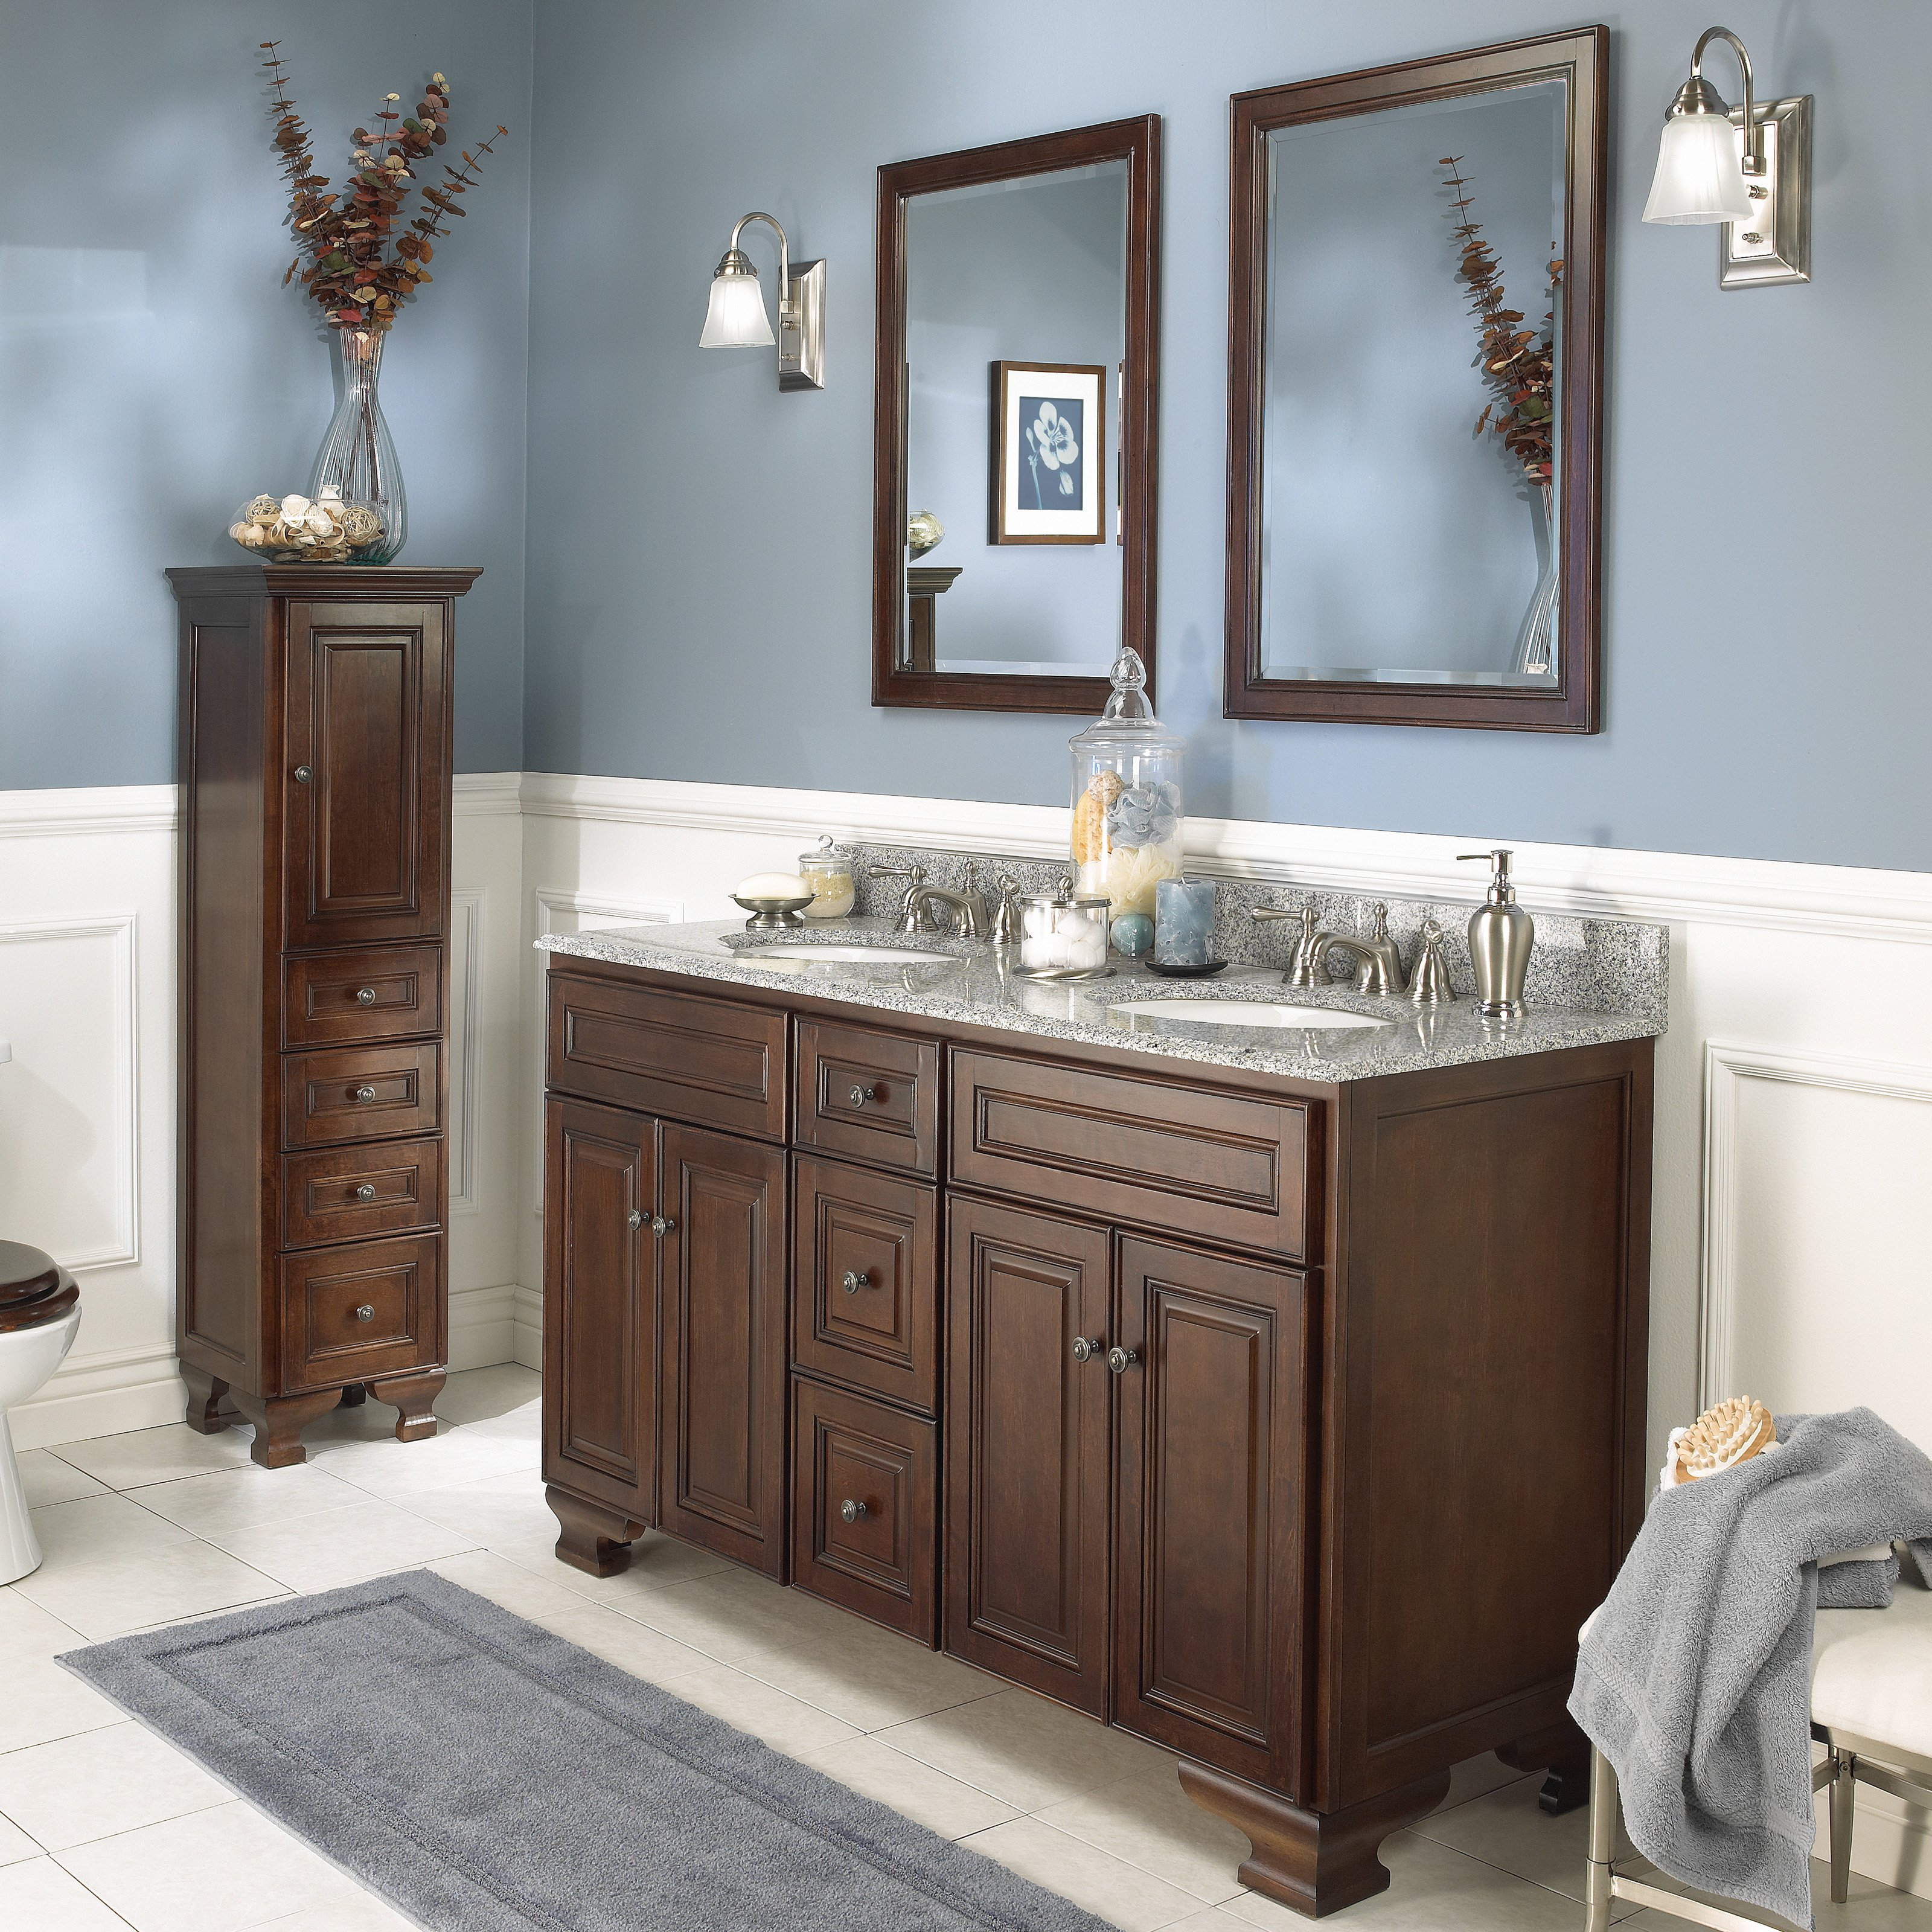 Foremost Hawthorne 60 in. Dark Walnut Double Bathroom Vanity with Mirrors